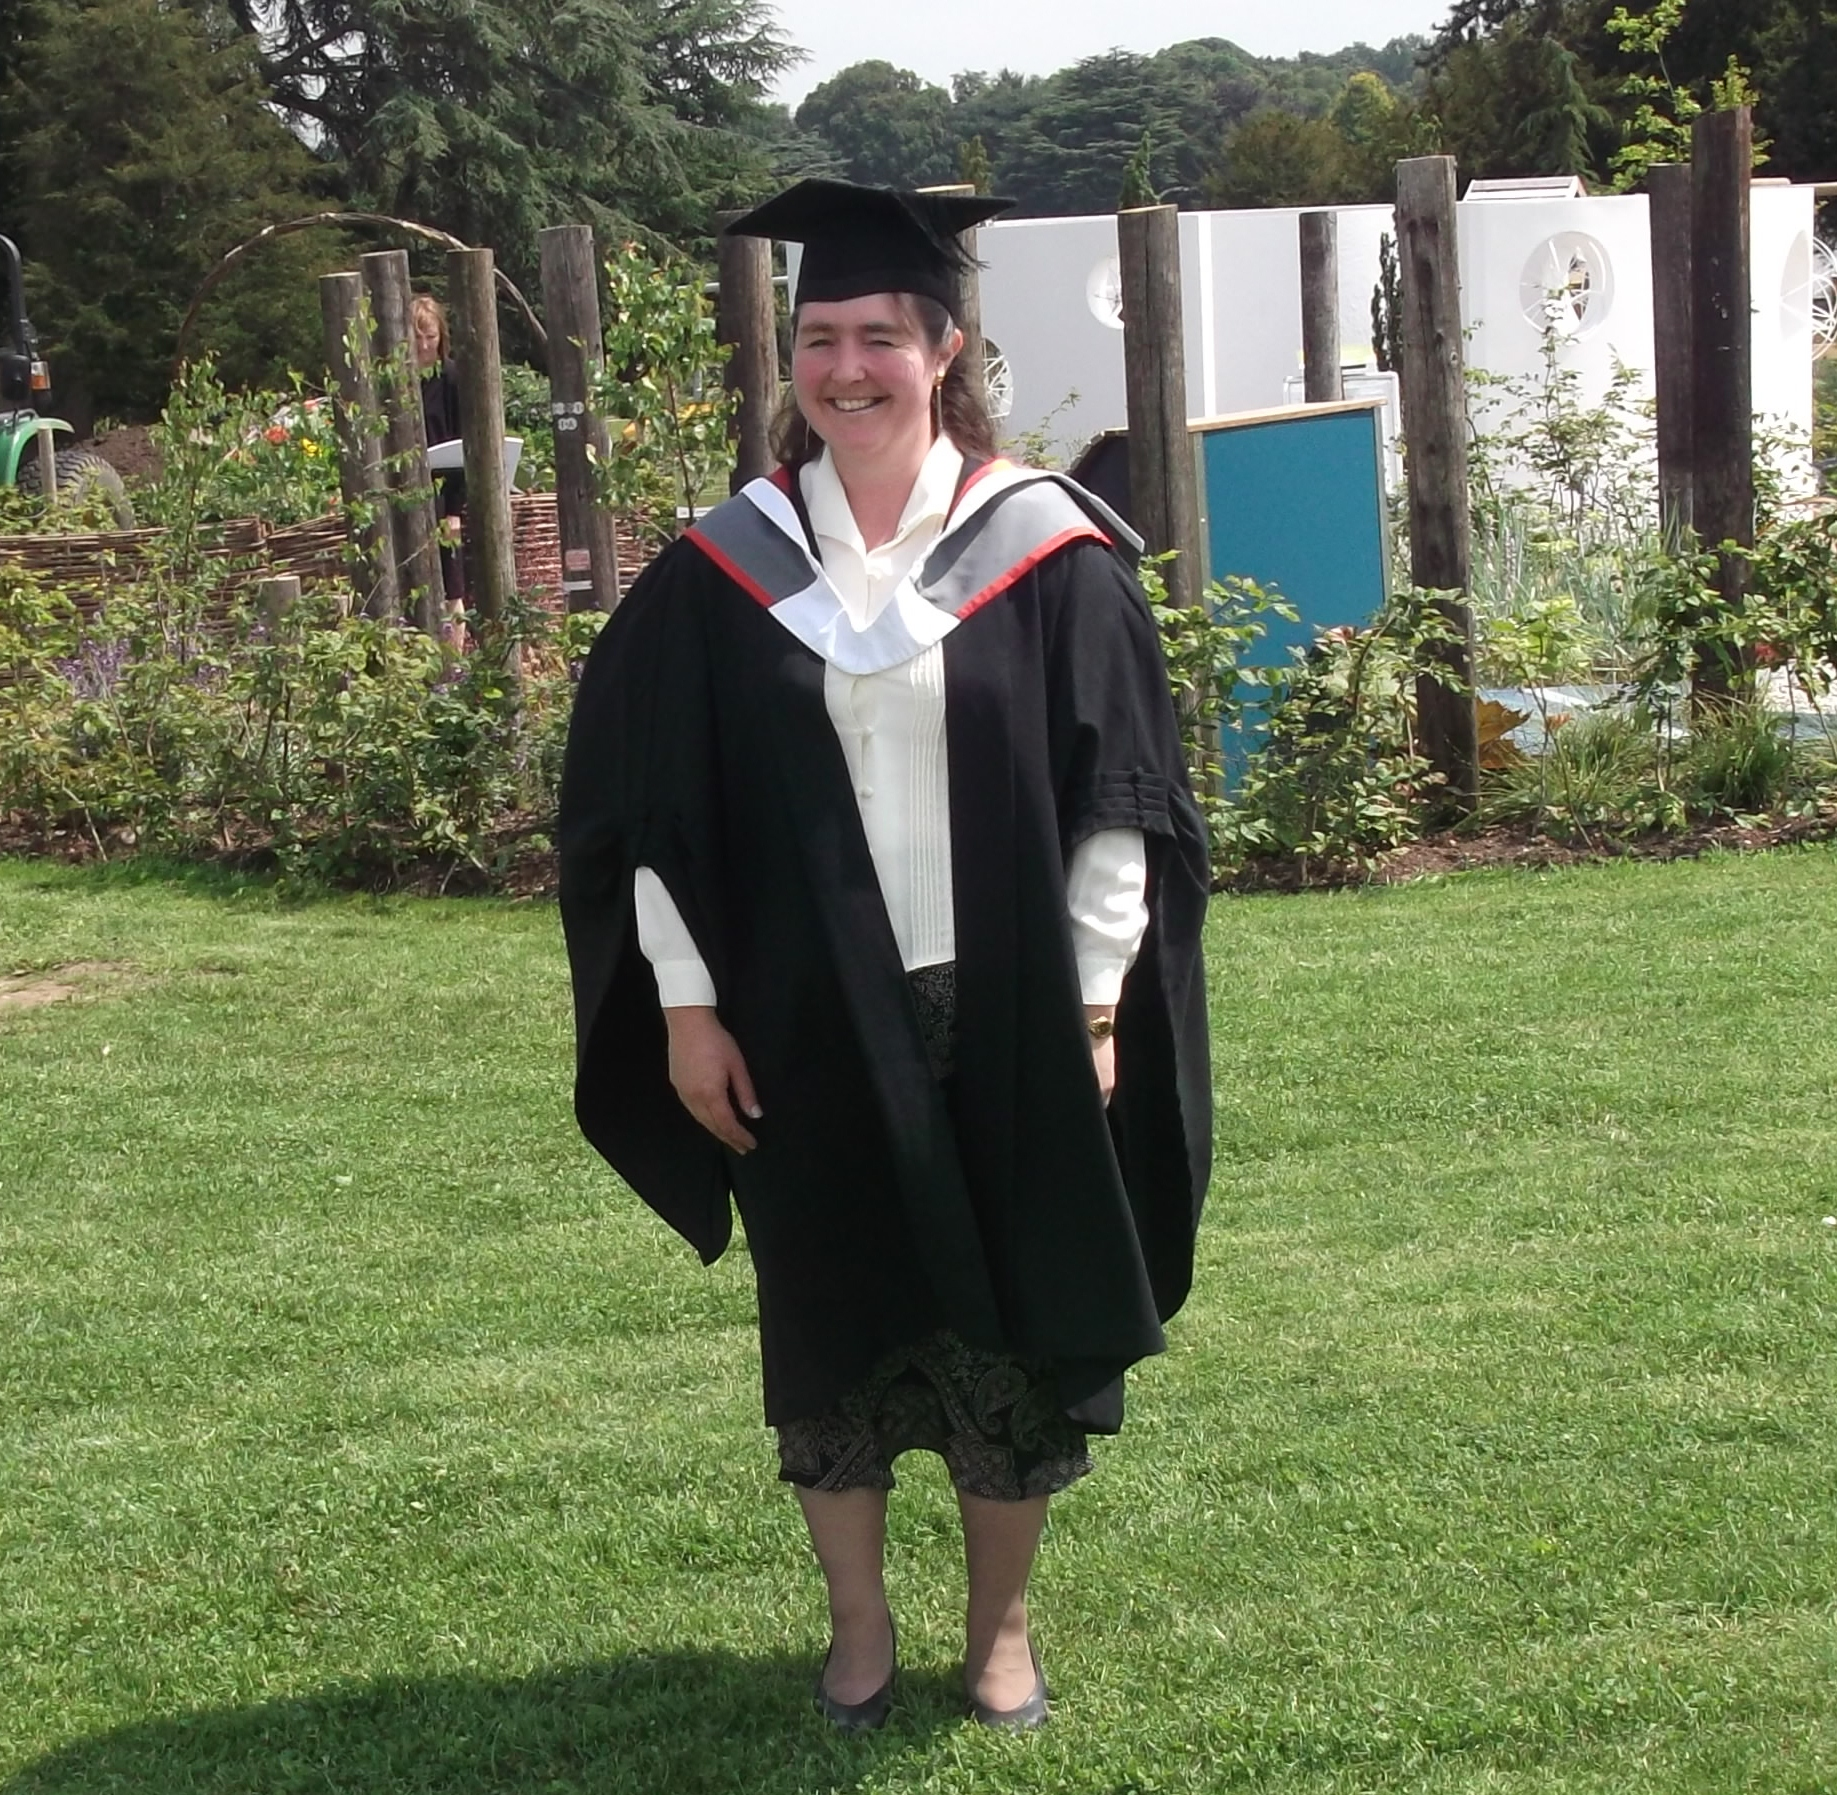 Home Instead Newcastle-Under-Lyme CAREgiver Marie Brain obtaining her Foundation Degree in Complementary Therapy